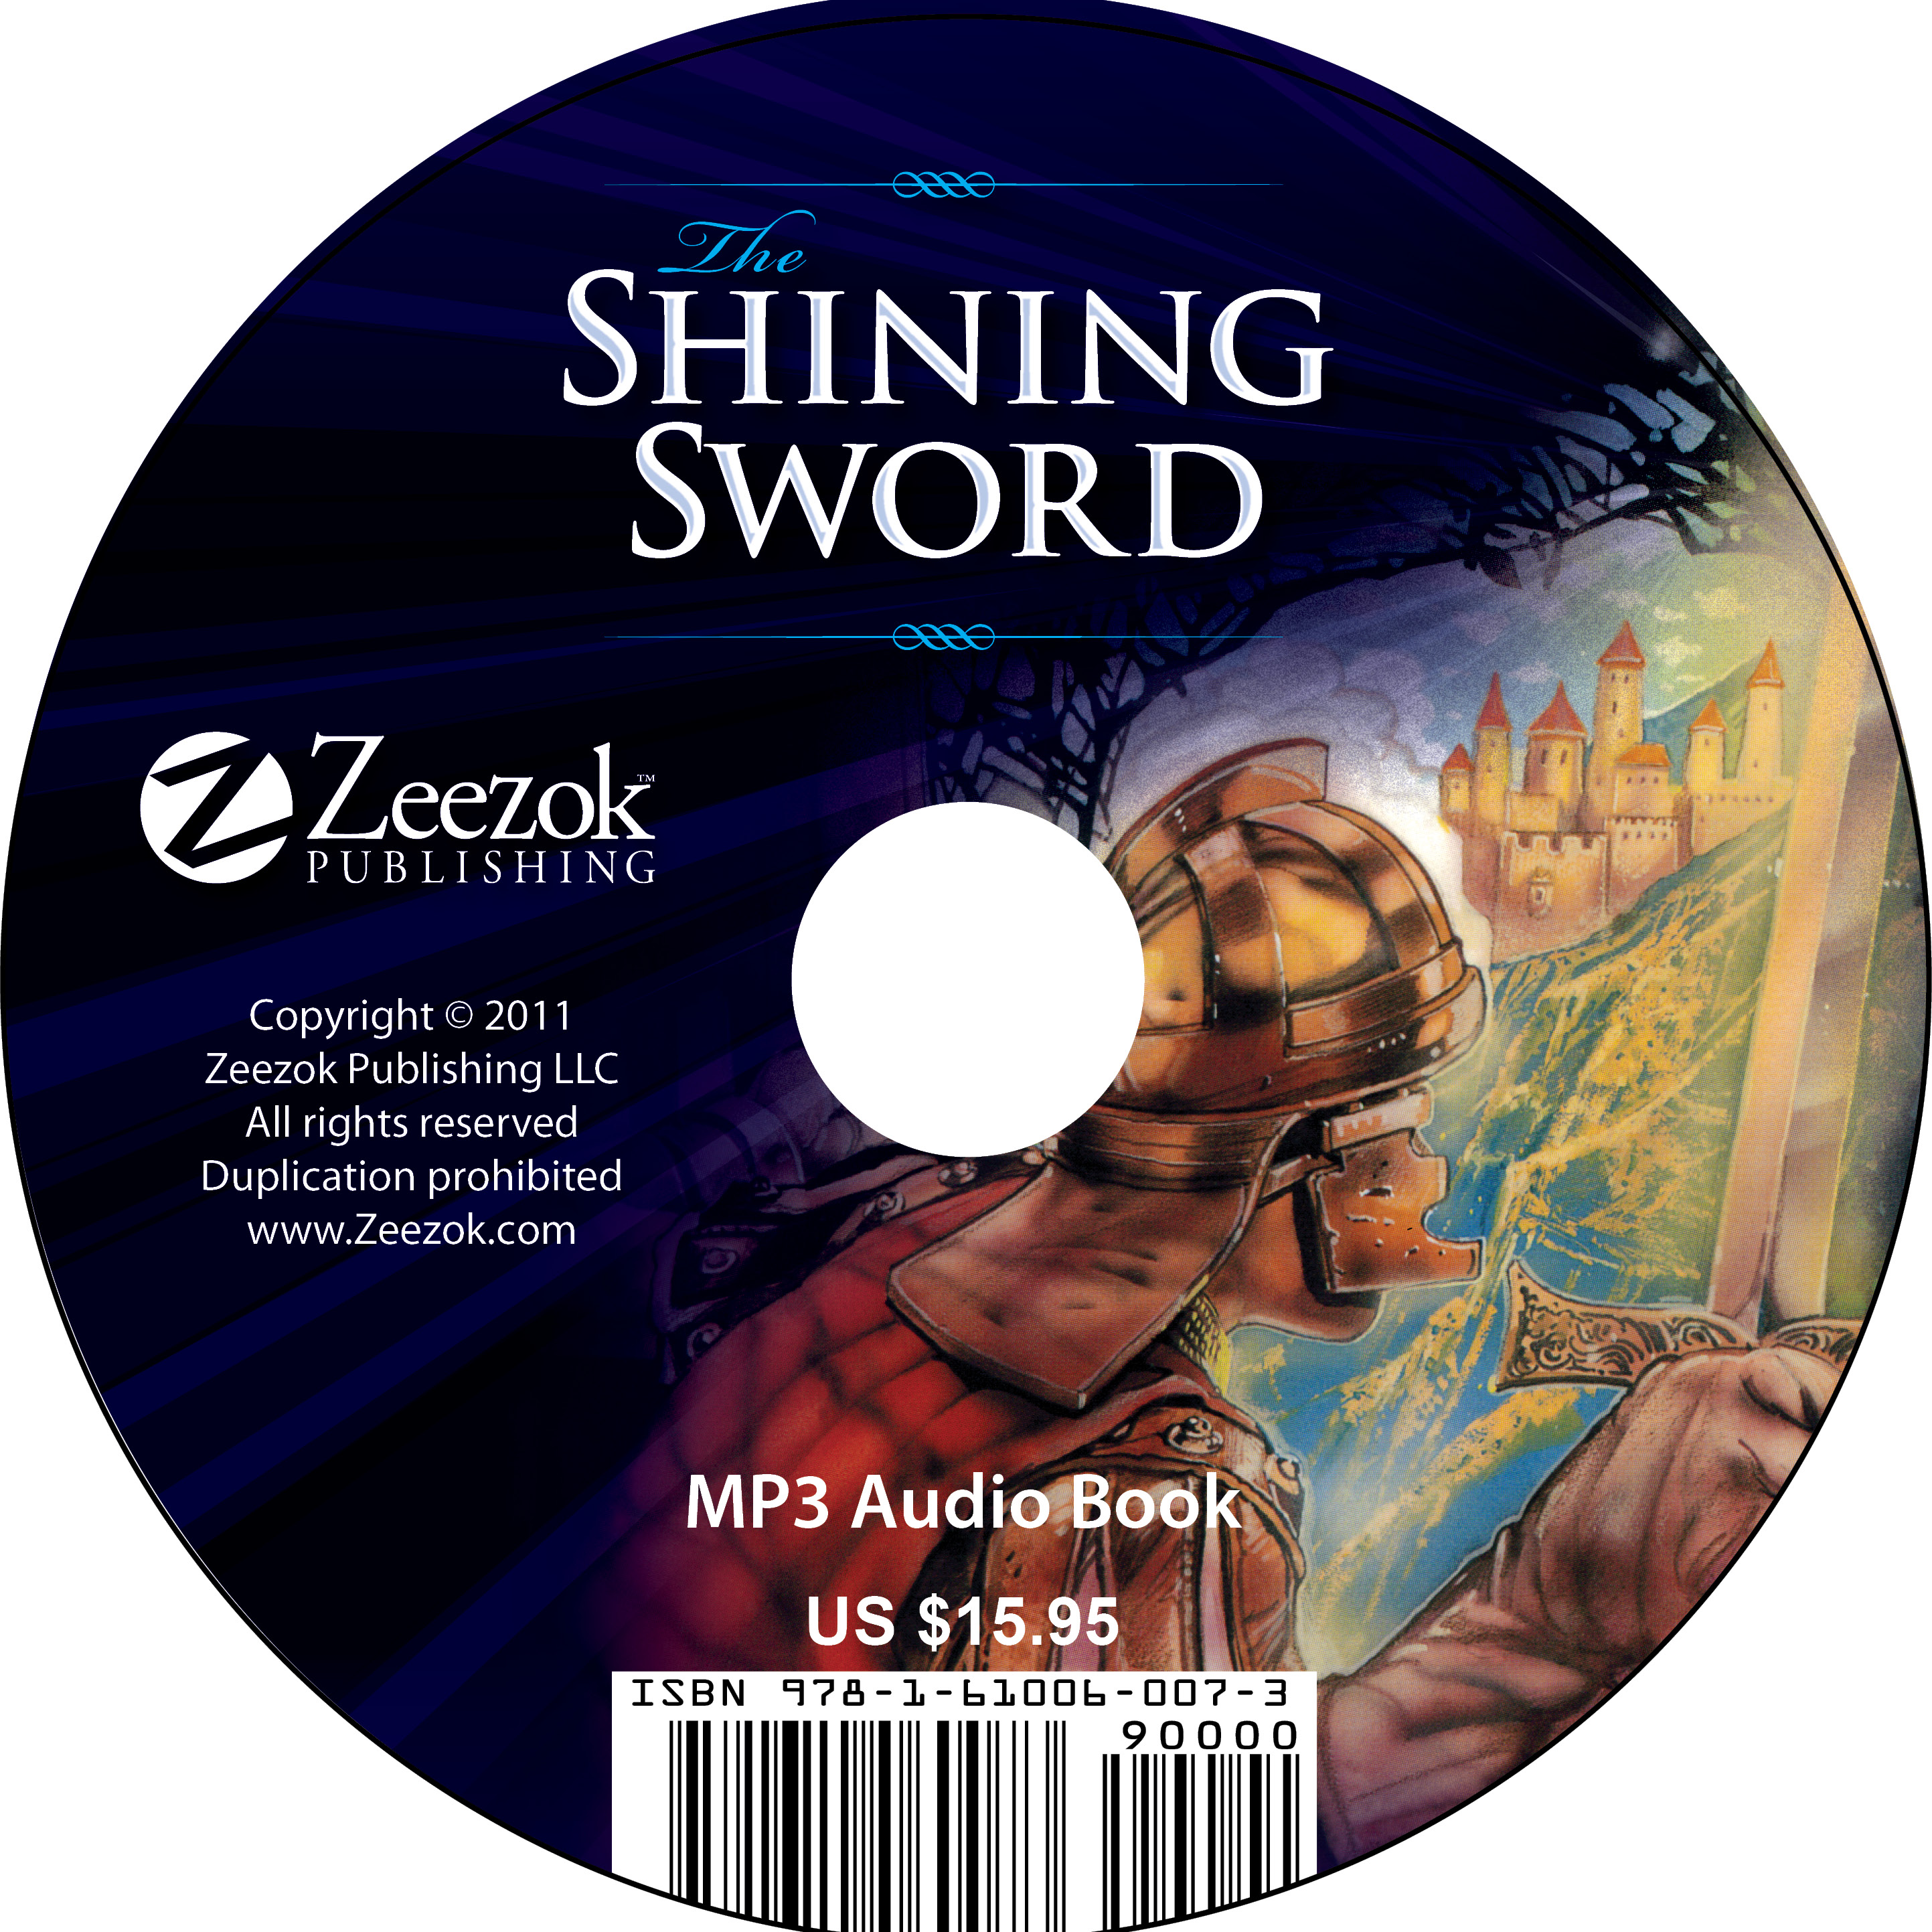 The Shining Sword Audio Book on CD (MP3 format) - photo#21